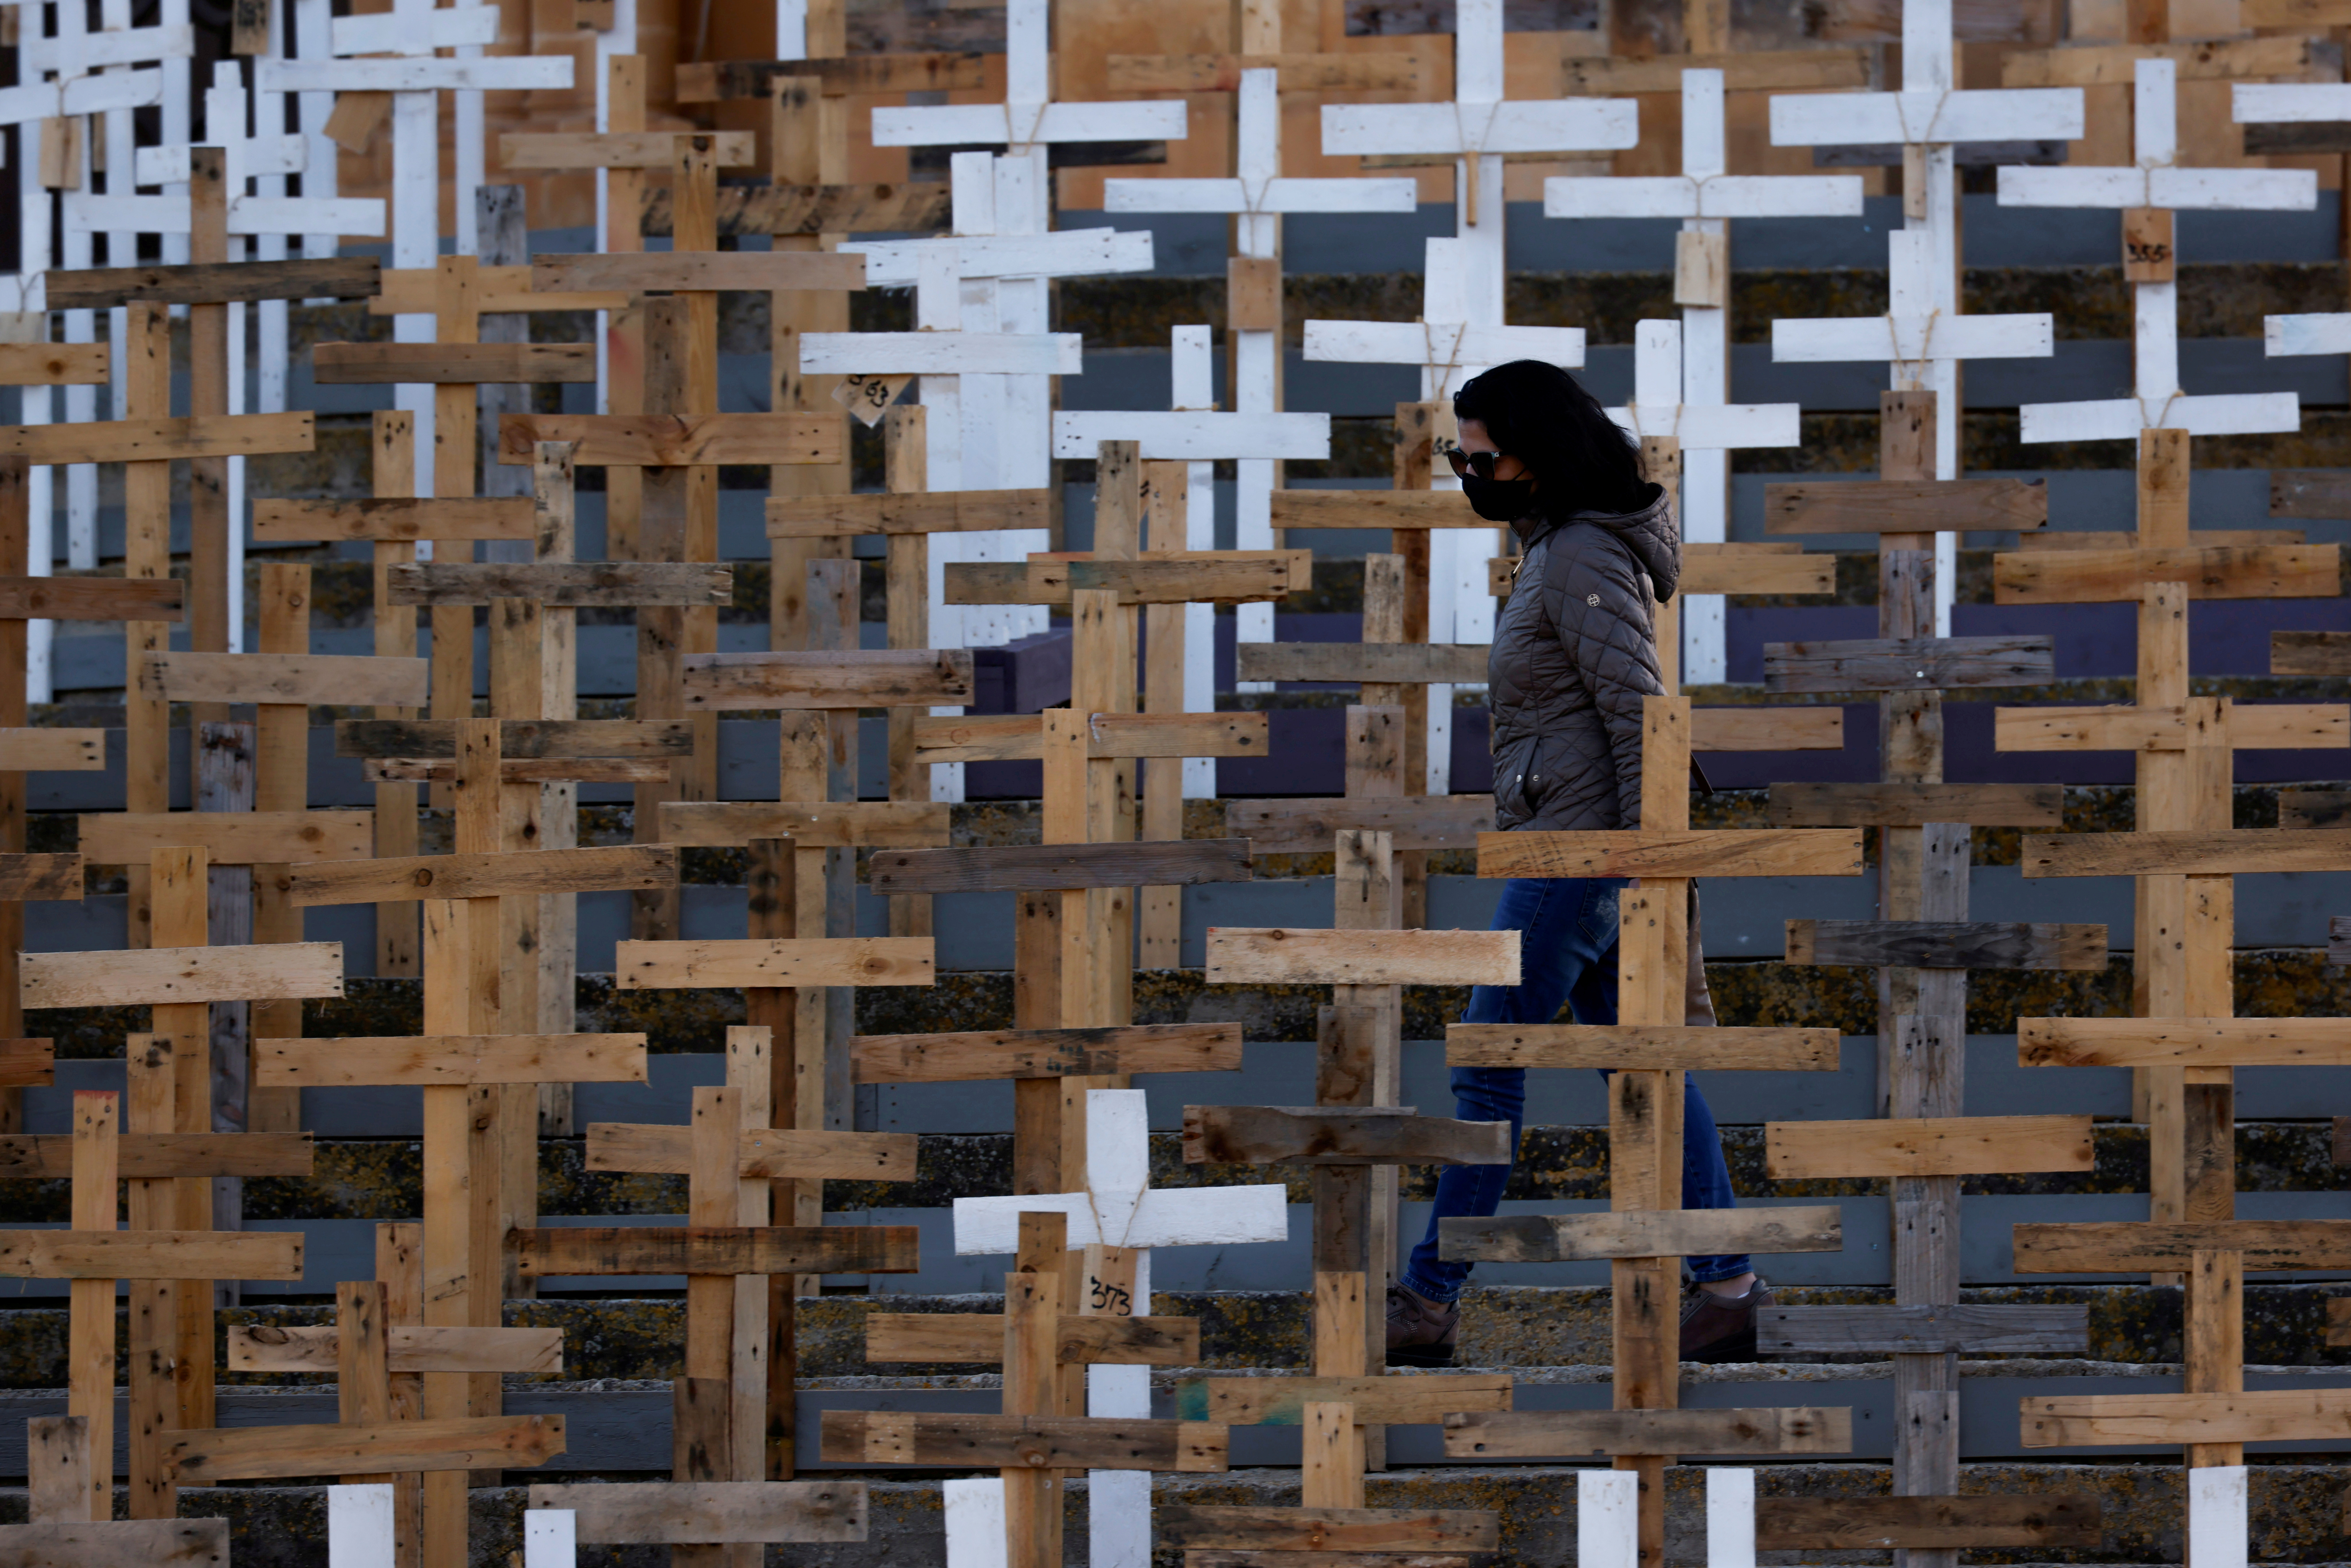 A woman wearing a mask walks among hundreds of crosses set up in front of the Parish Church of Our Lady of Loreto to commemorate Holy Week and as a memorial to the victims of the coronavirus disease (COVID-19) pandemic, in the village of Ghajnsielem on the island of Gozo, Malta March 27, 2021. REUTERS/Darrin Zammit Lupi